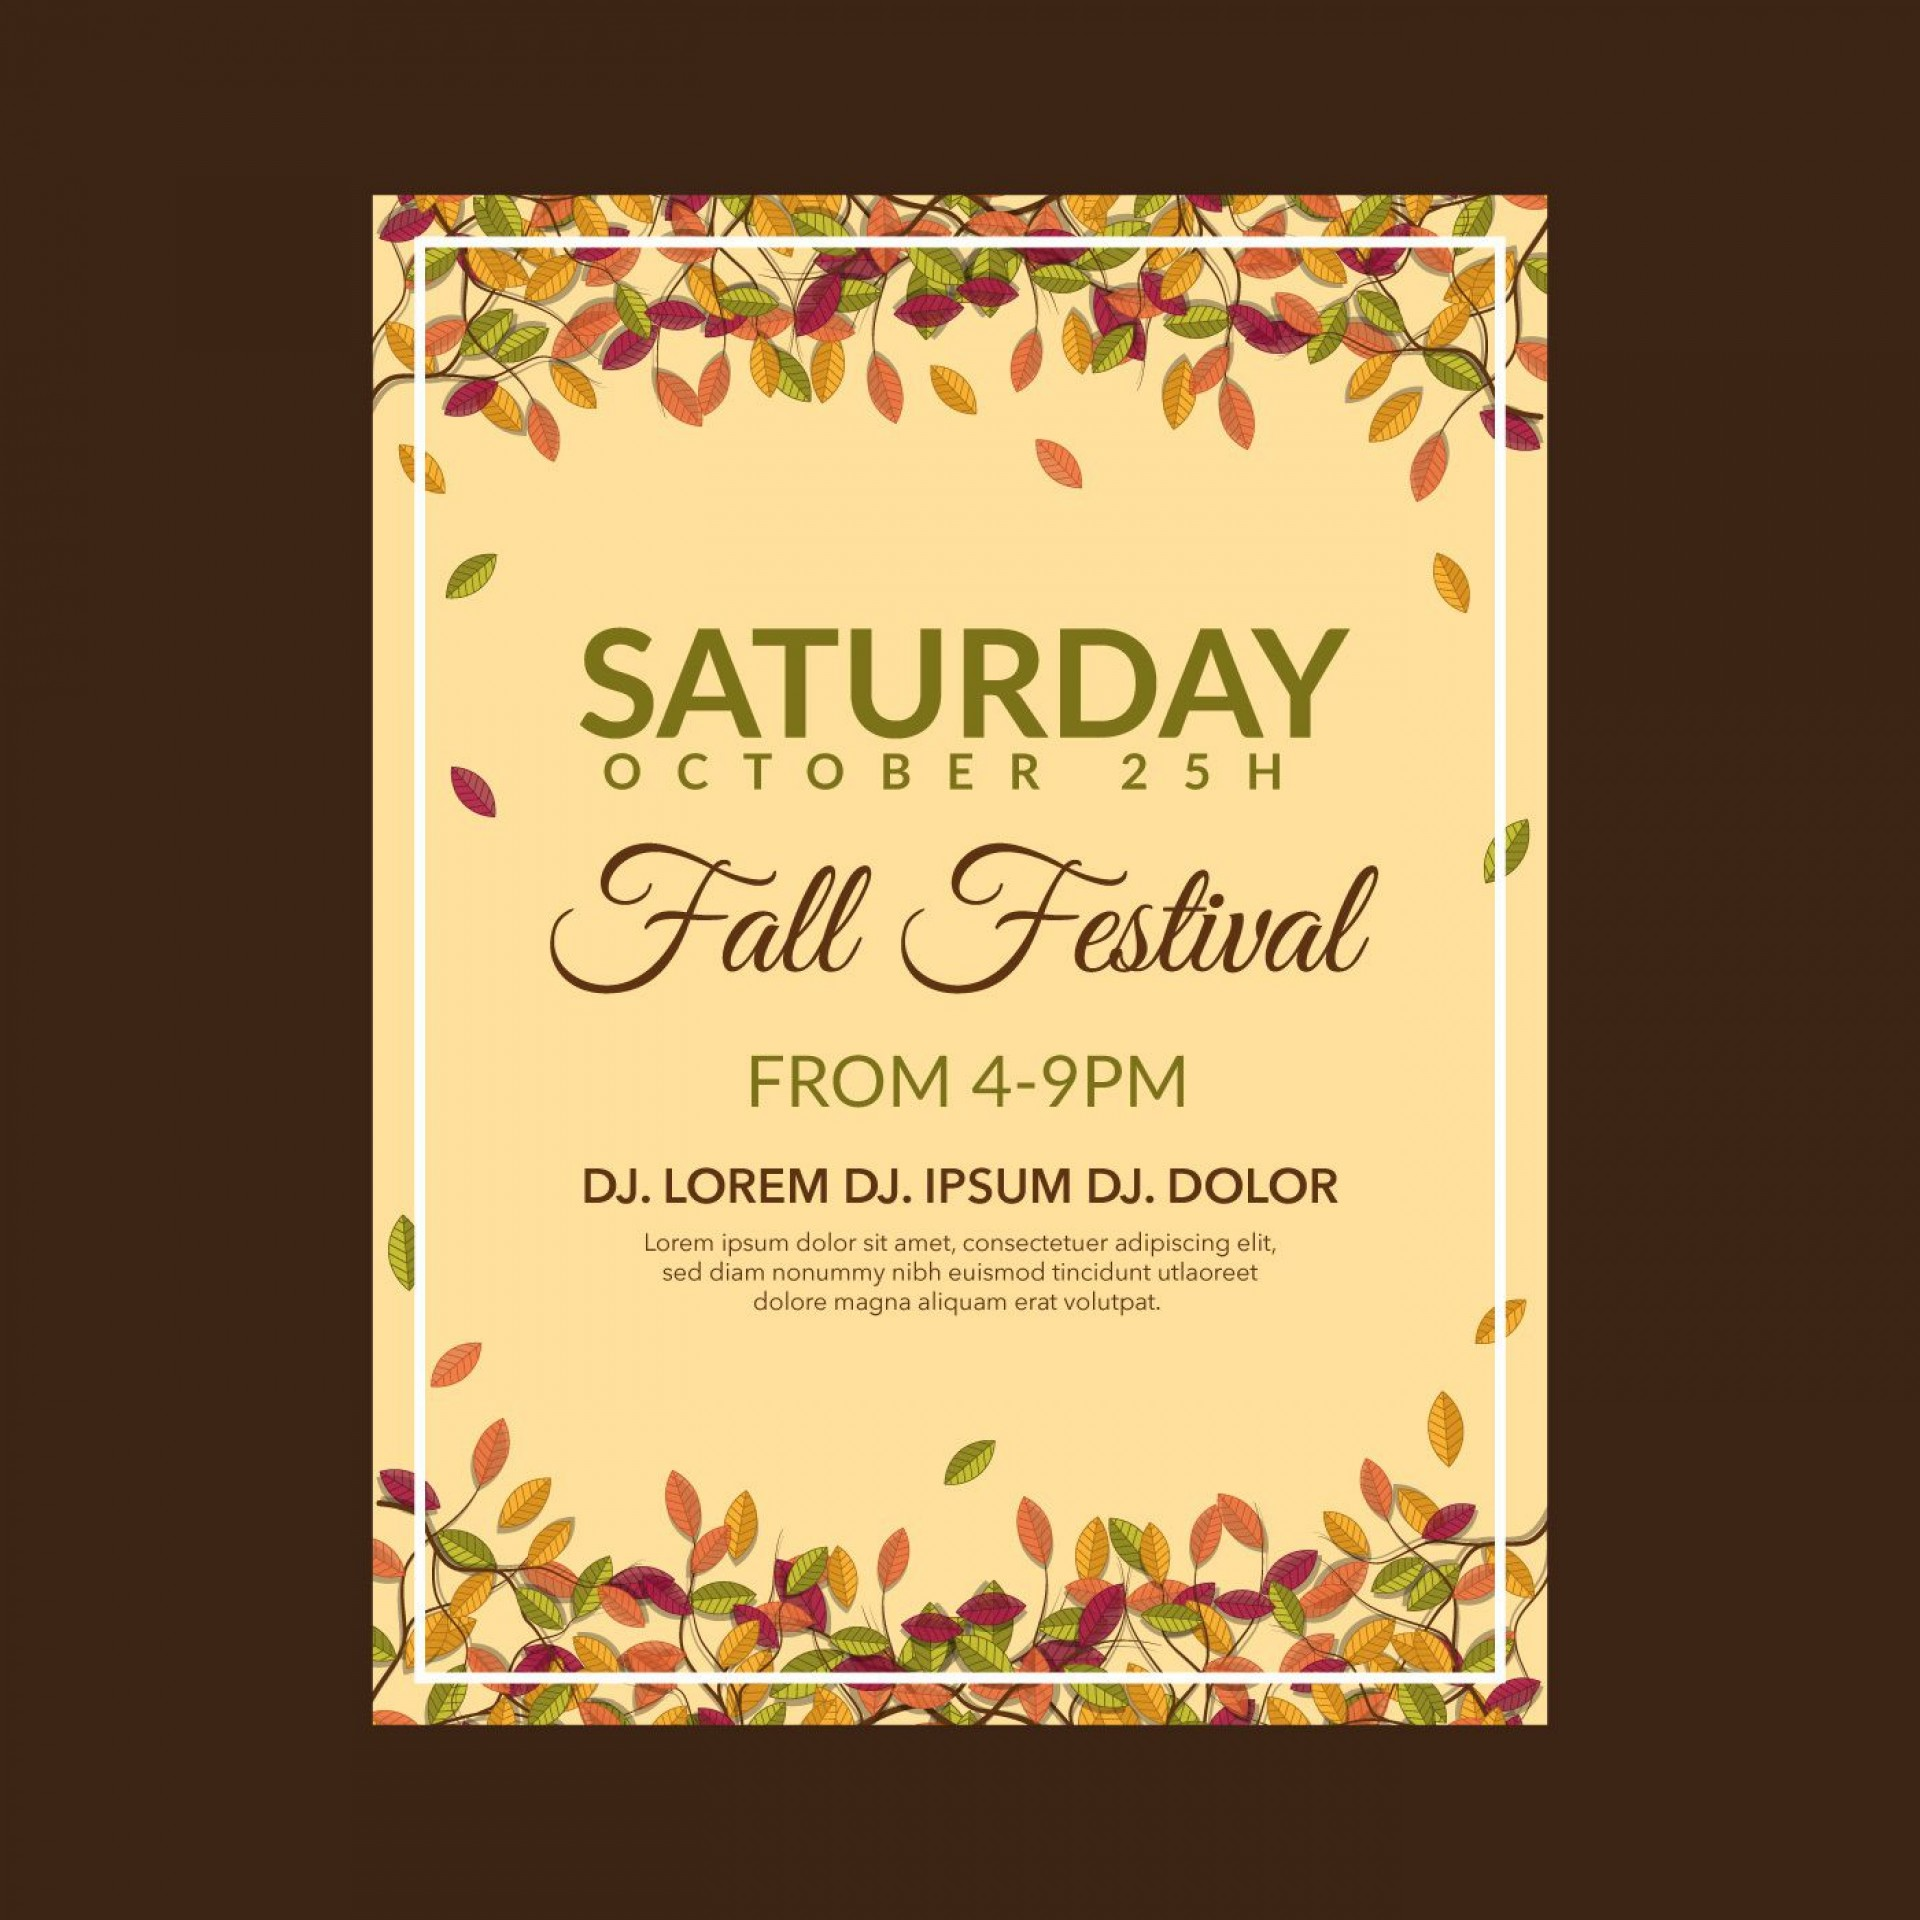 004 Wondrou Fall Festival Flyer Template Example  Free1920